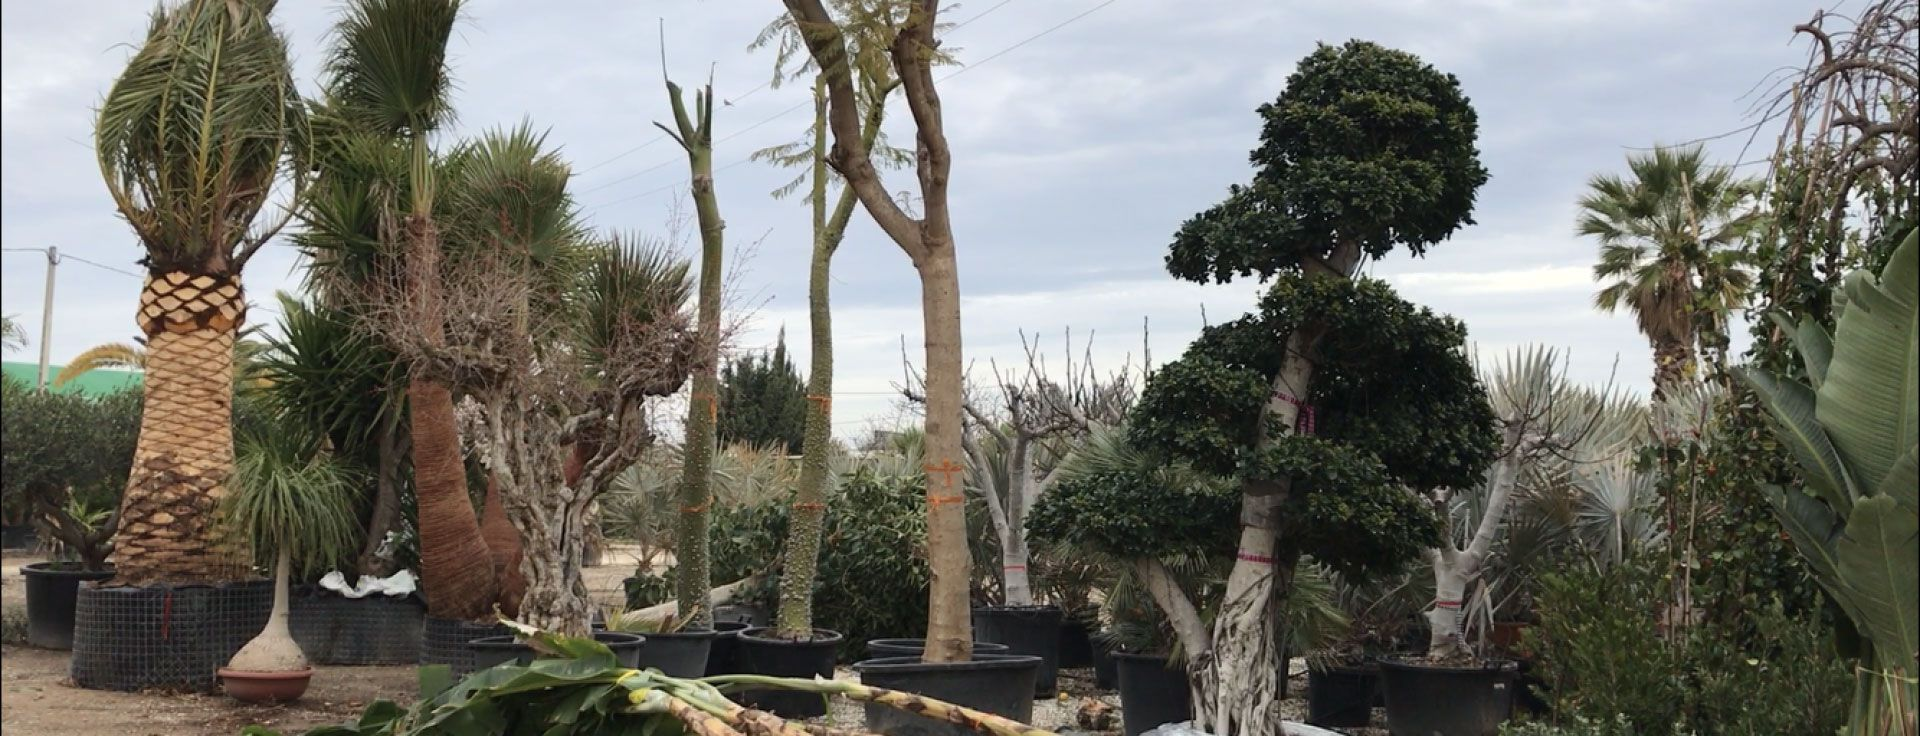 Mediterranean plants for wholesale in Alicante and Elche